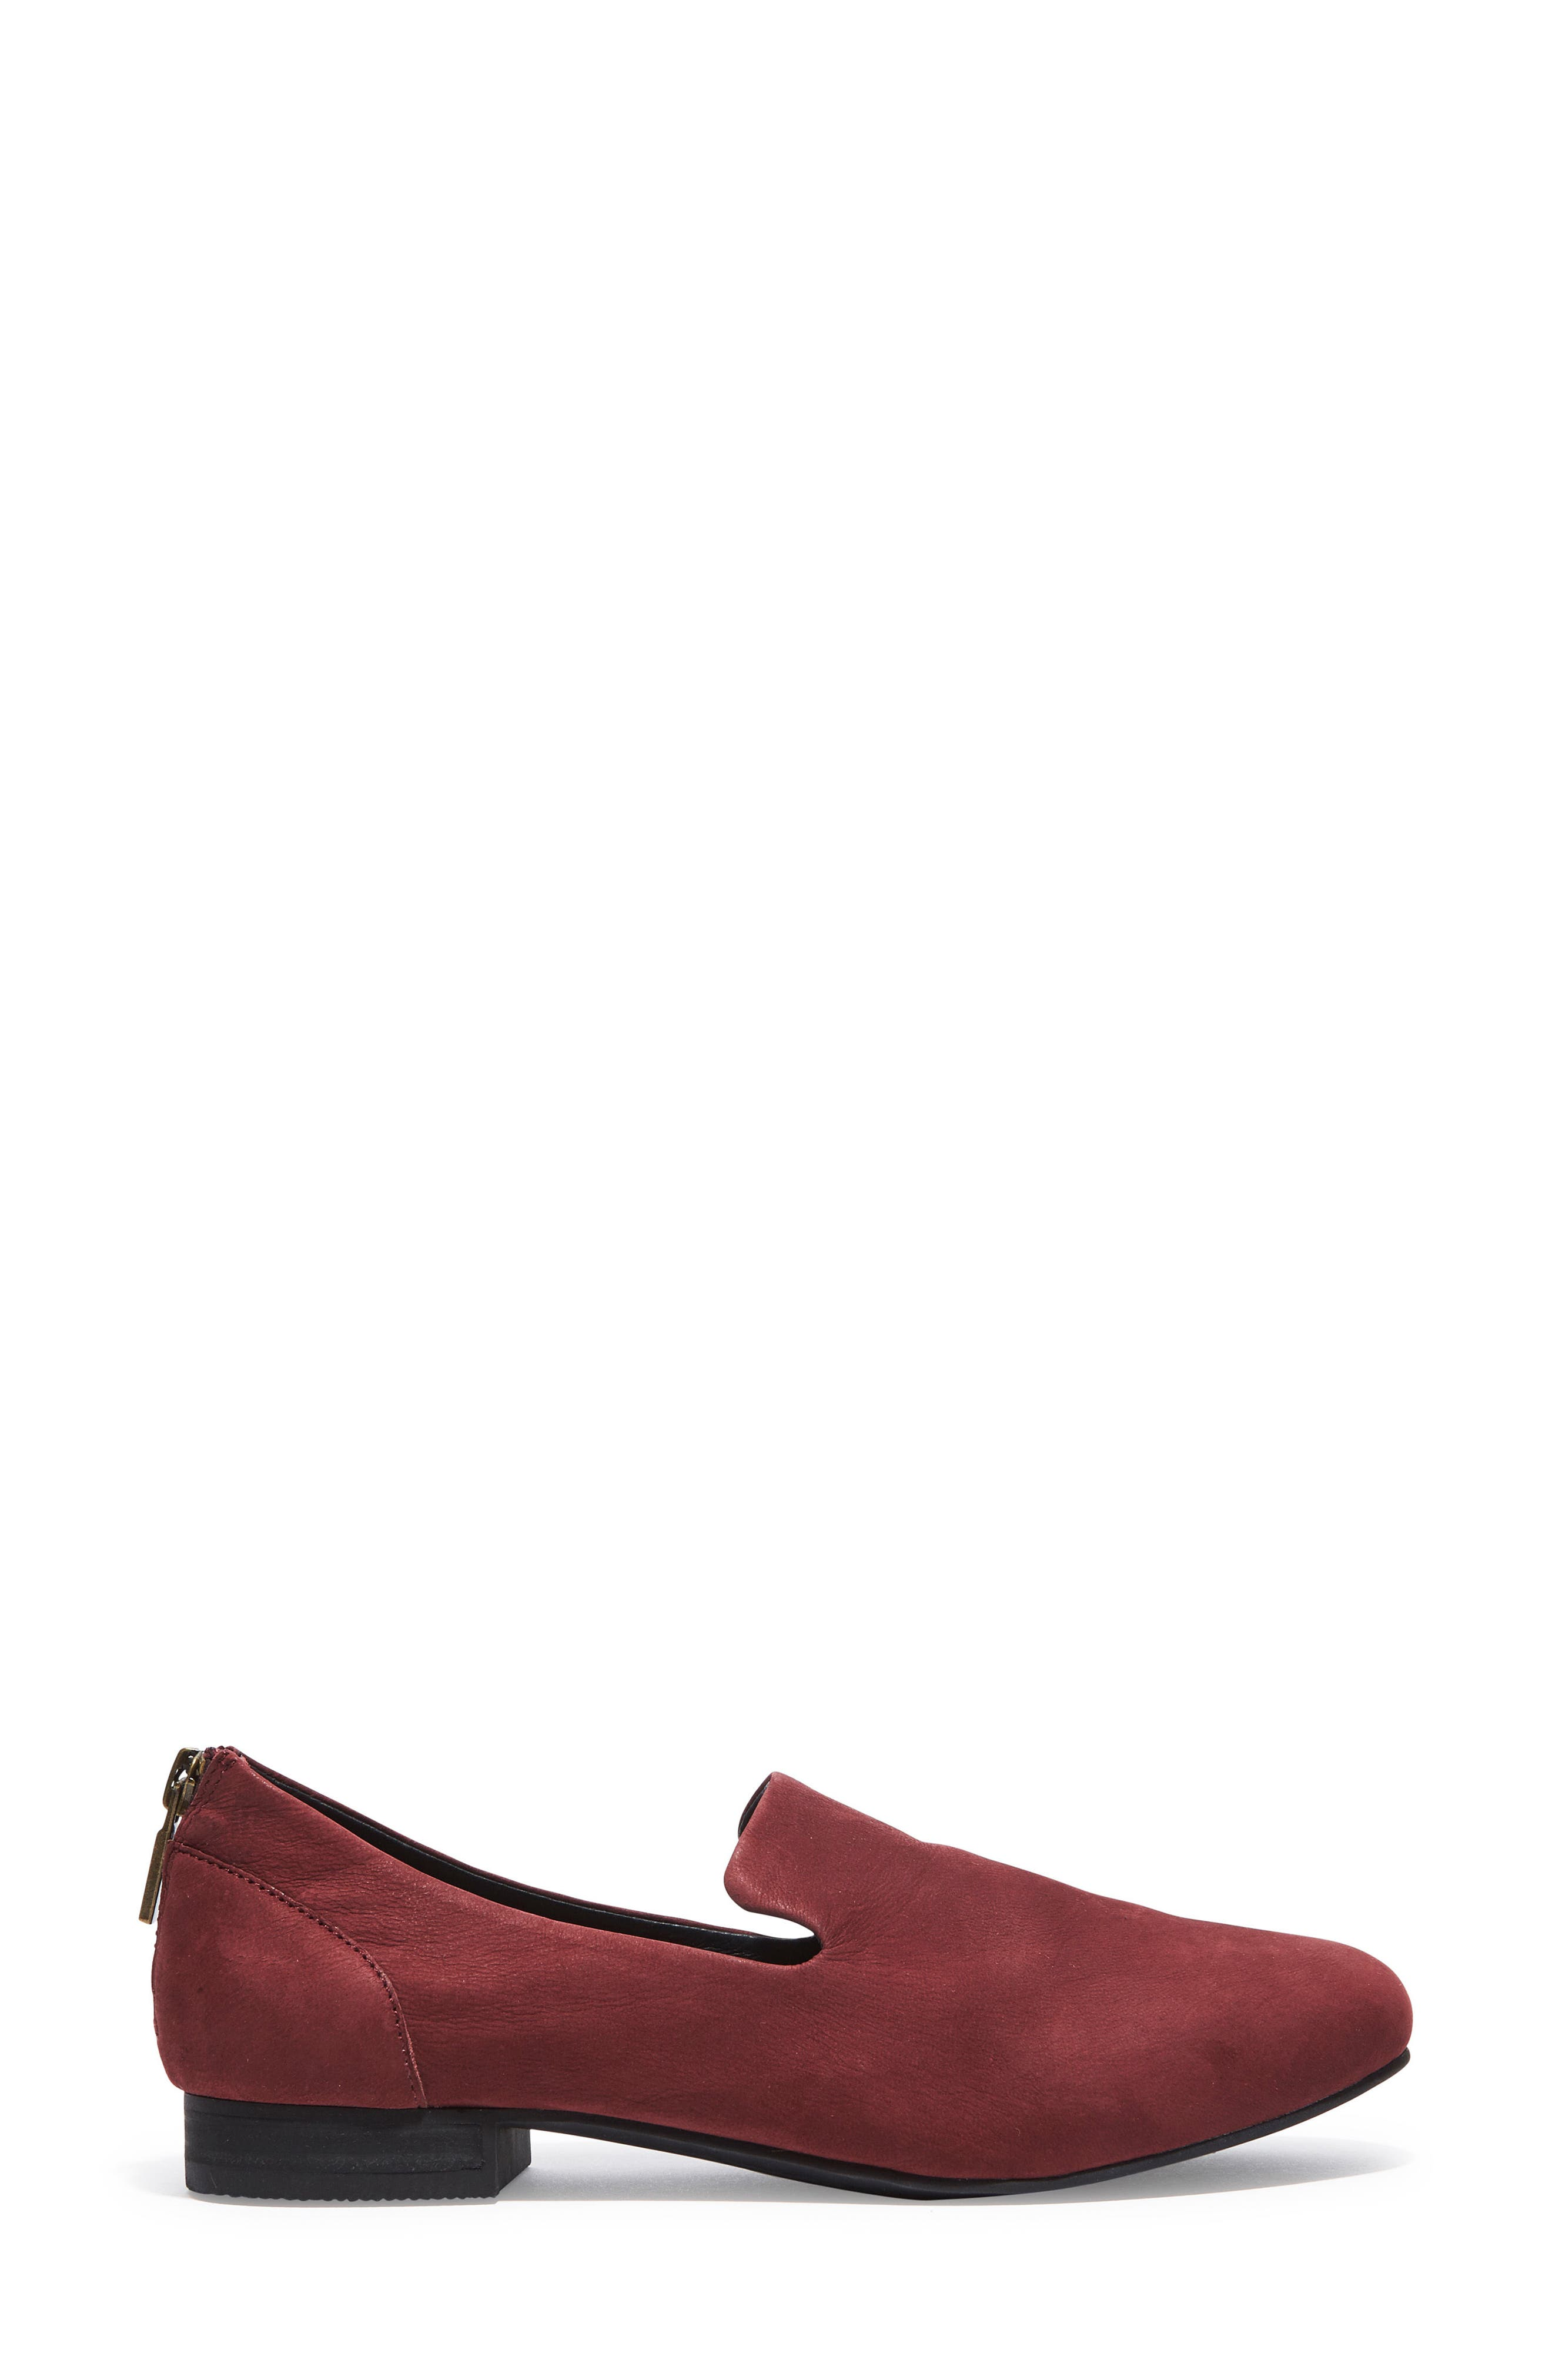 Marina Zip Loafer,                             Alternate thumbnail 12, color,